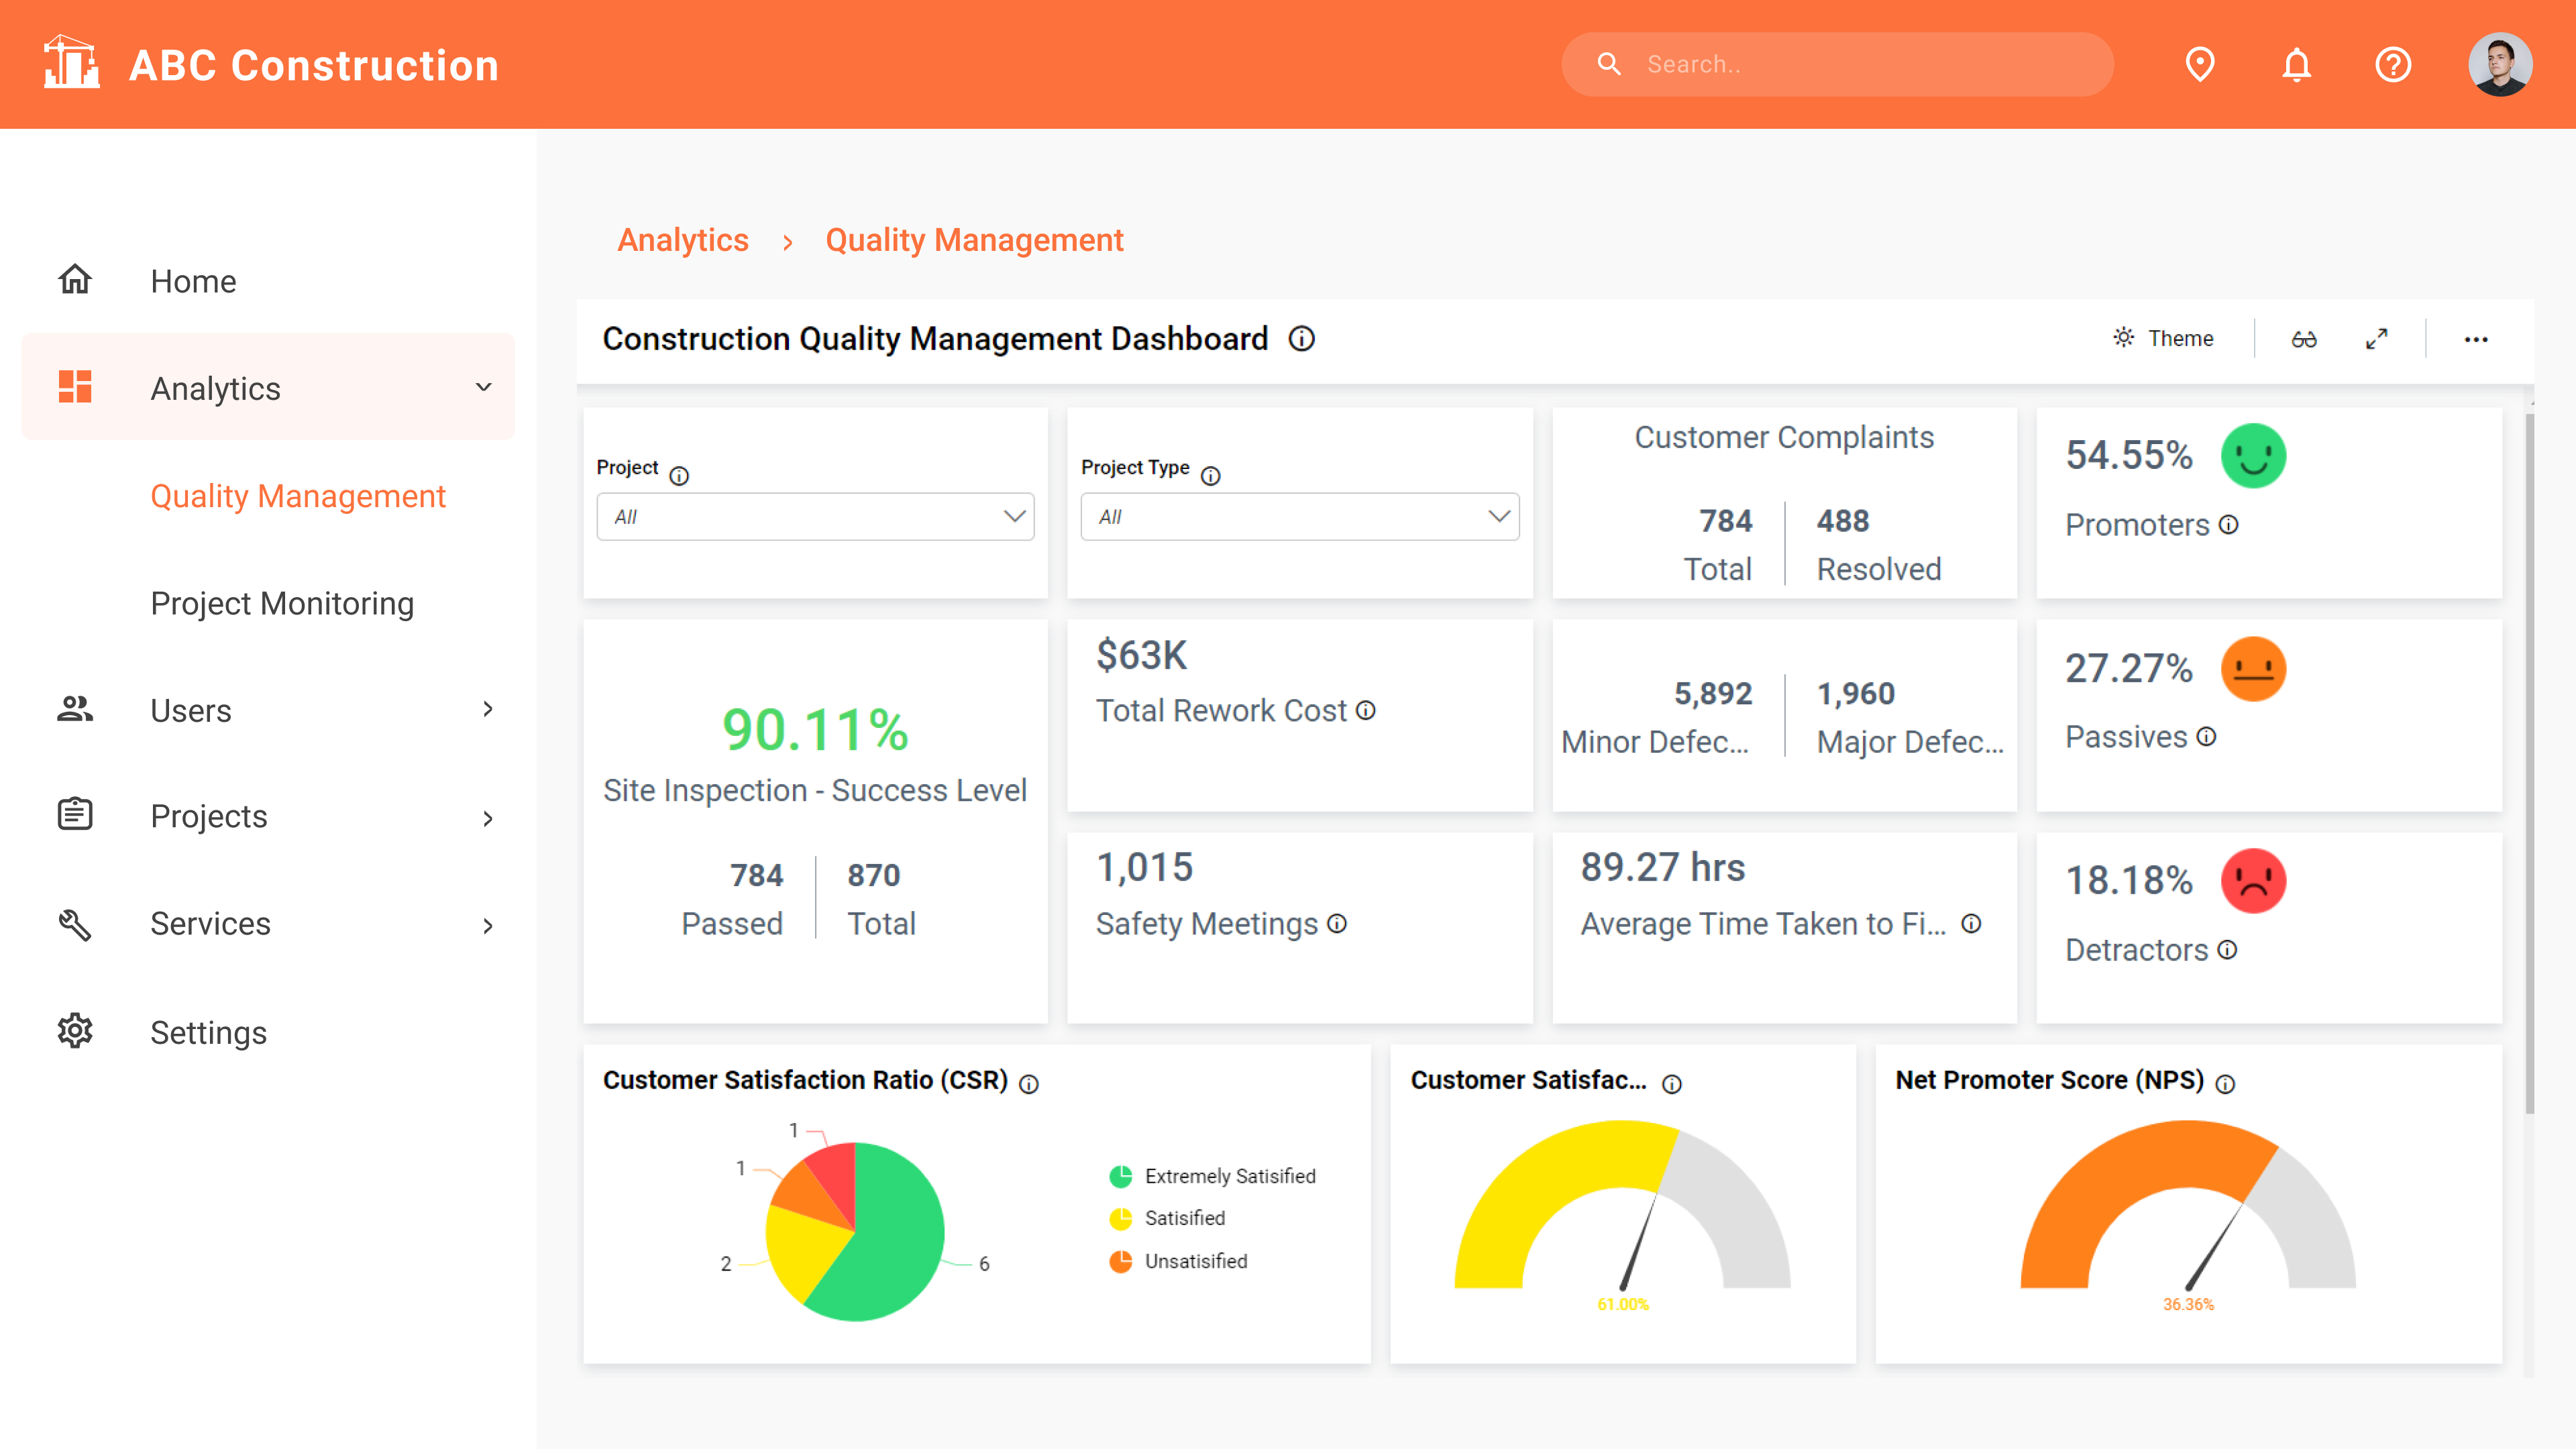 Construction Quality Management Dashboard Embedded into ASP.NET Core Application